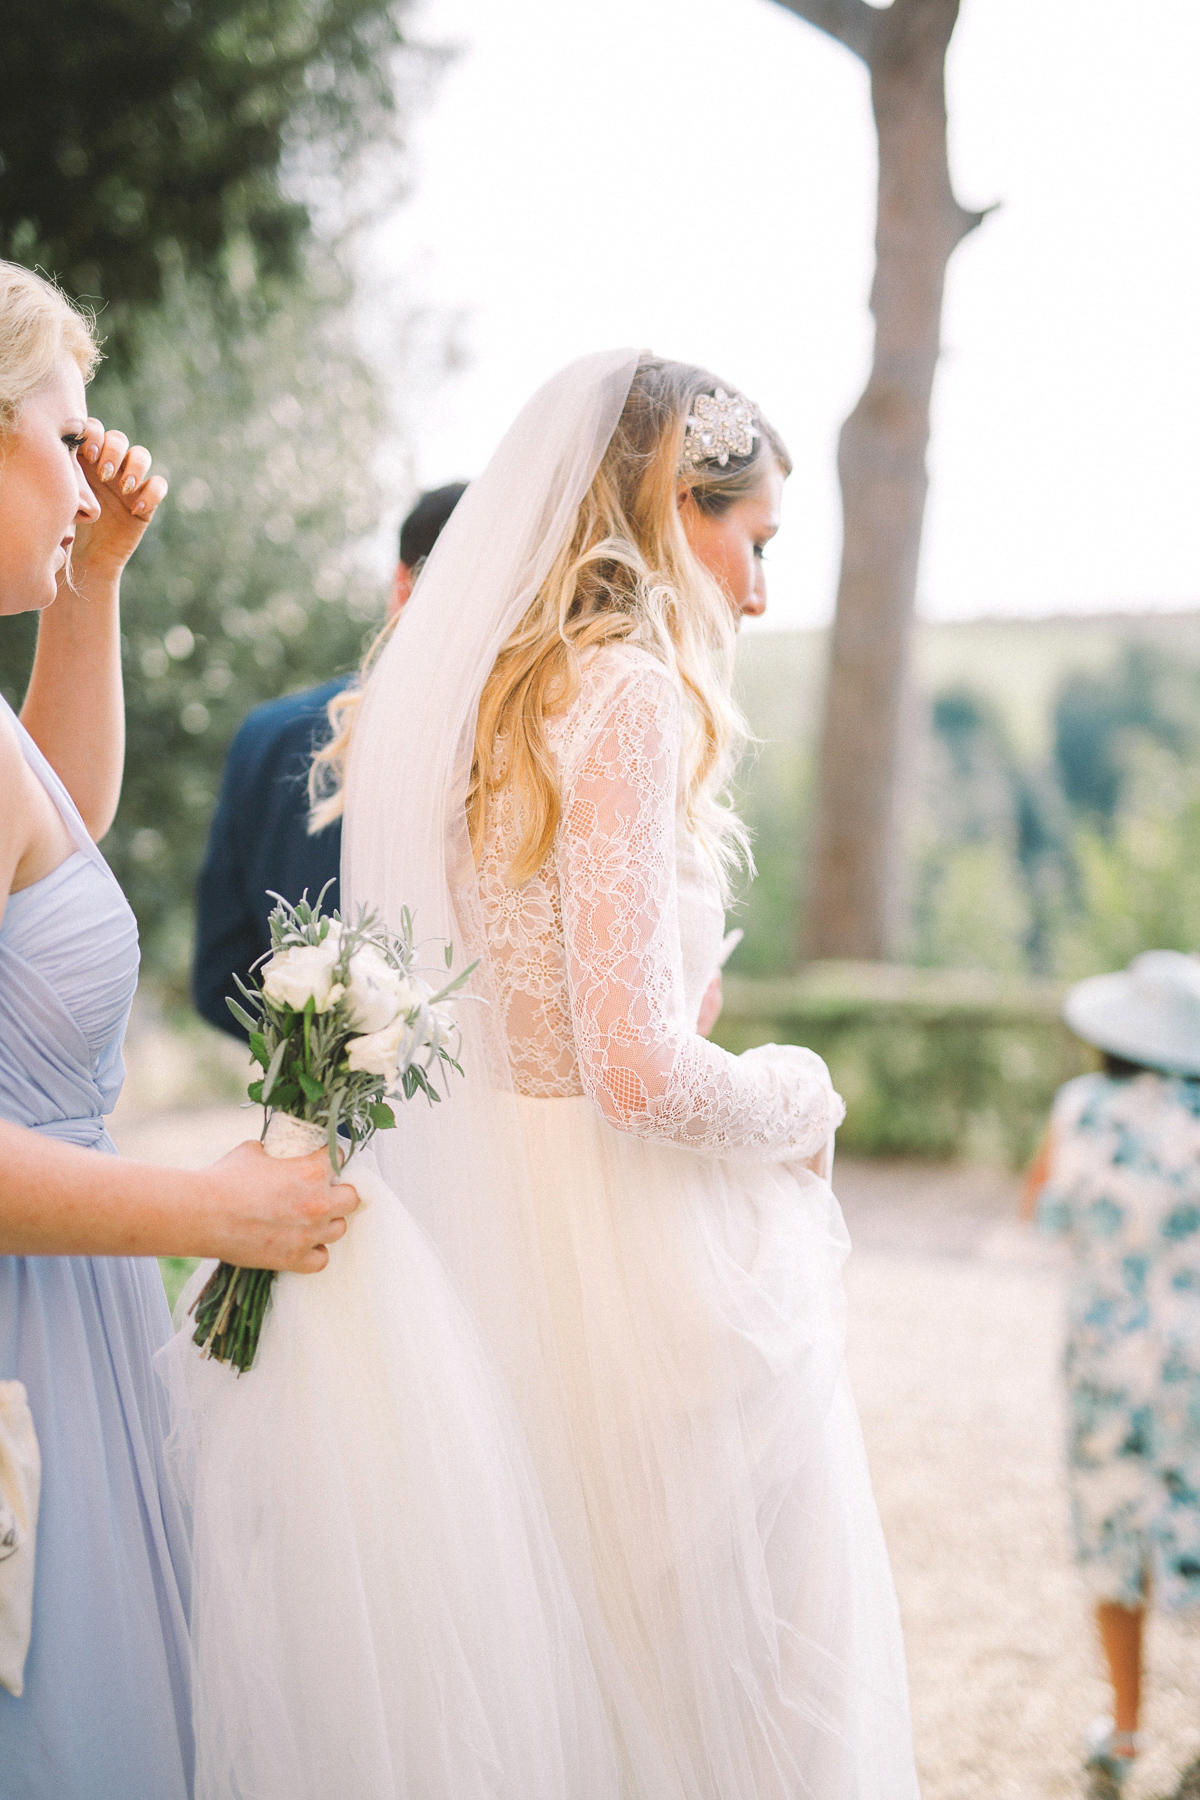 """8124d04cecc0 ... fine art elegant boho romantic italy wedding - A Long Sleeved Lace  Dress for a Relaxed. """""""